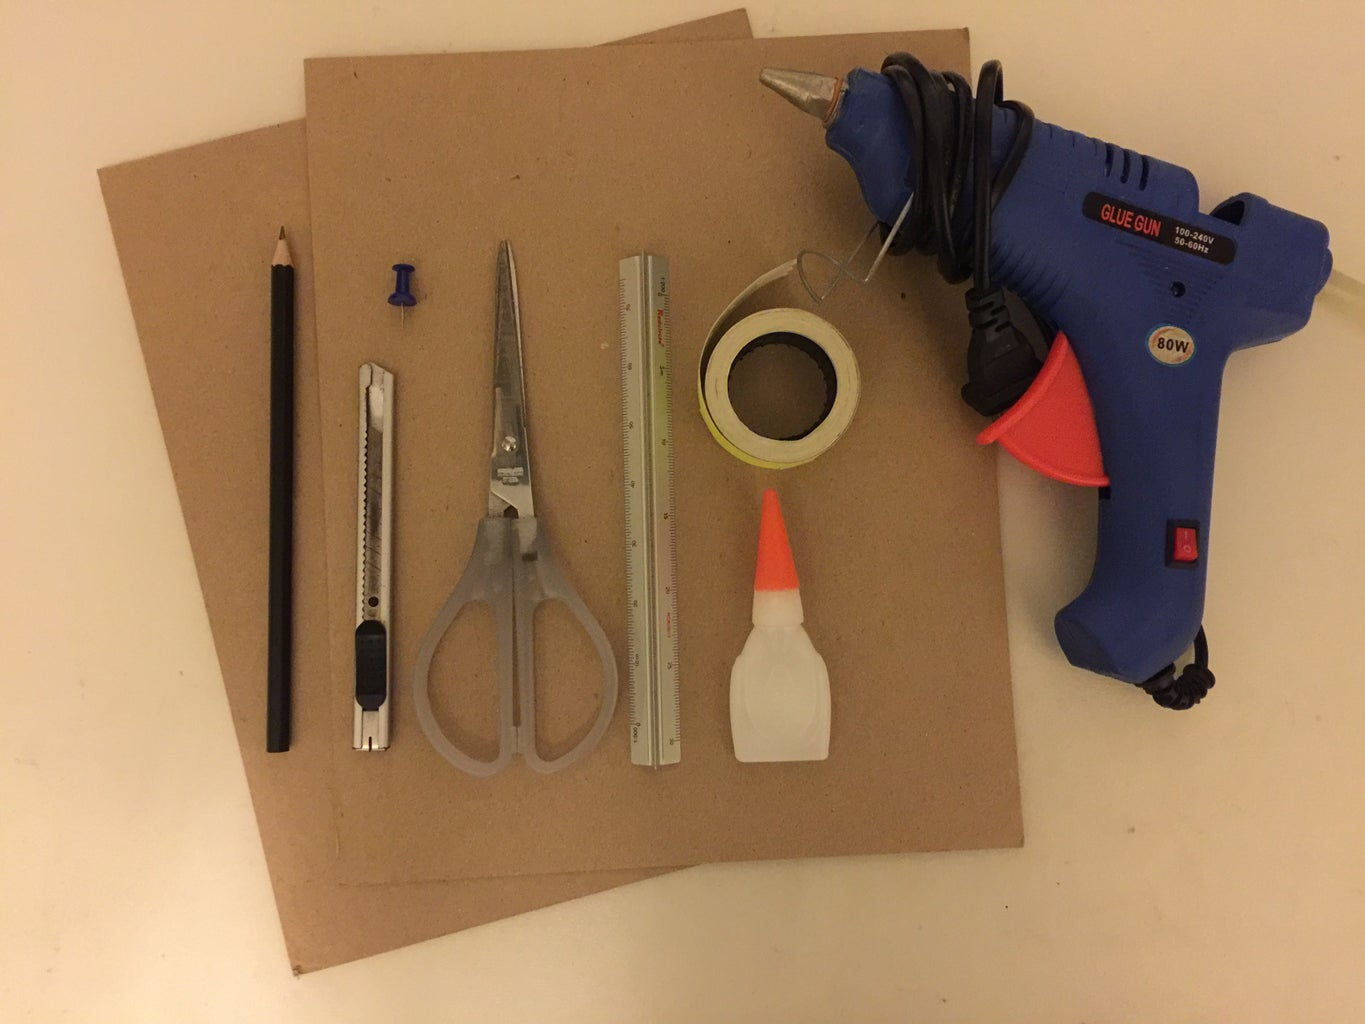 Material, Components & Equipment Needed